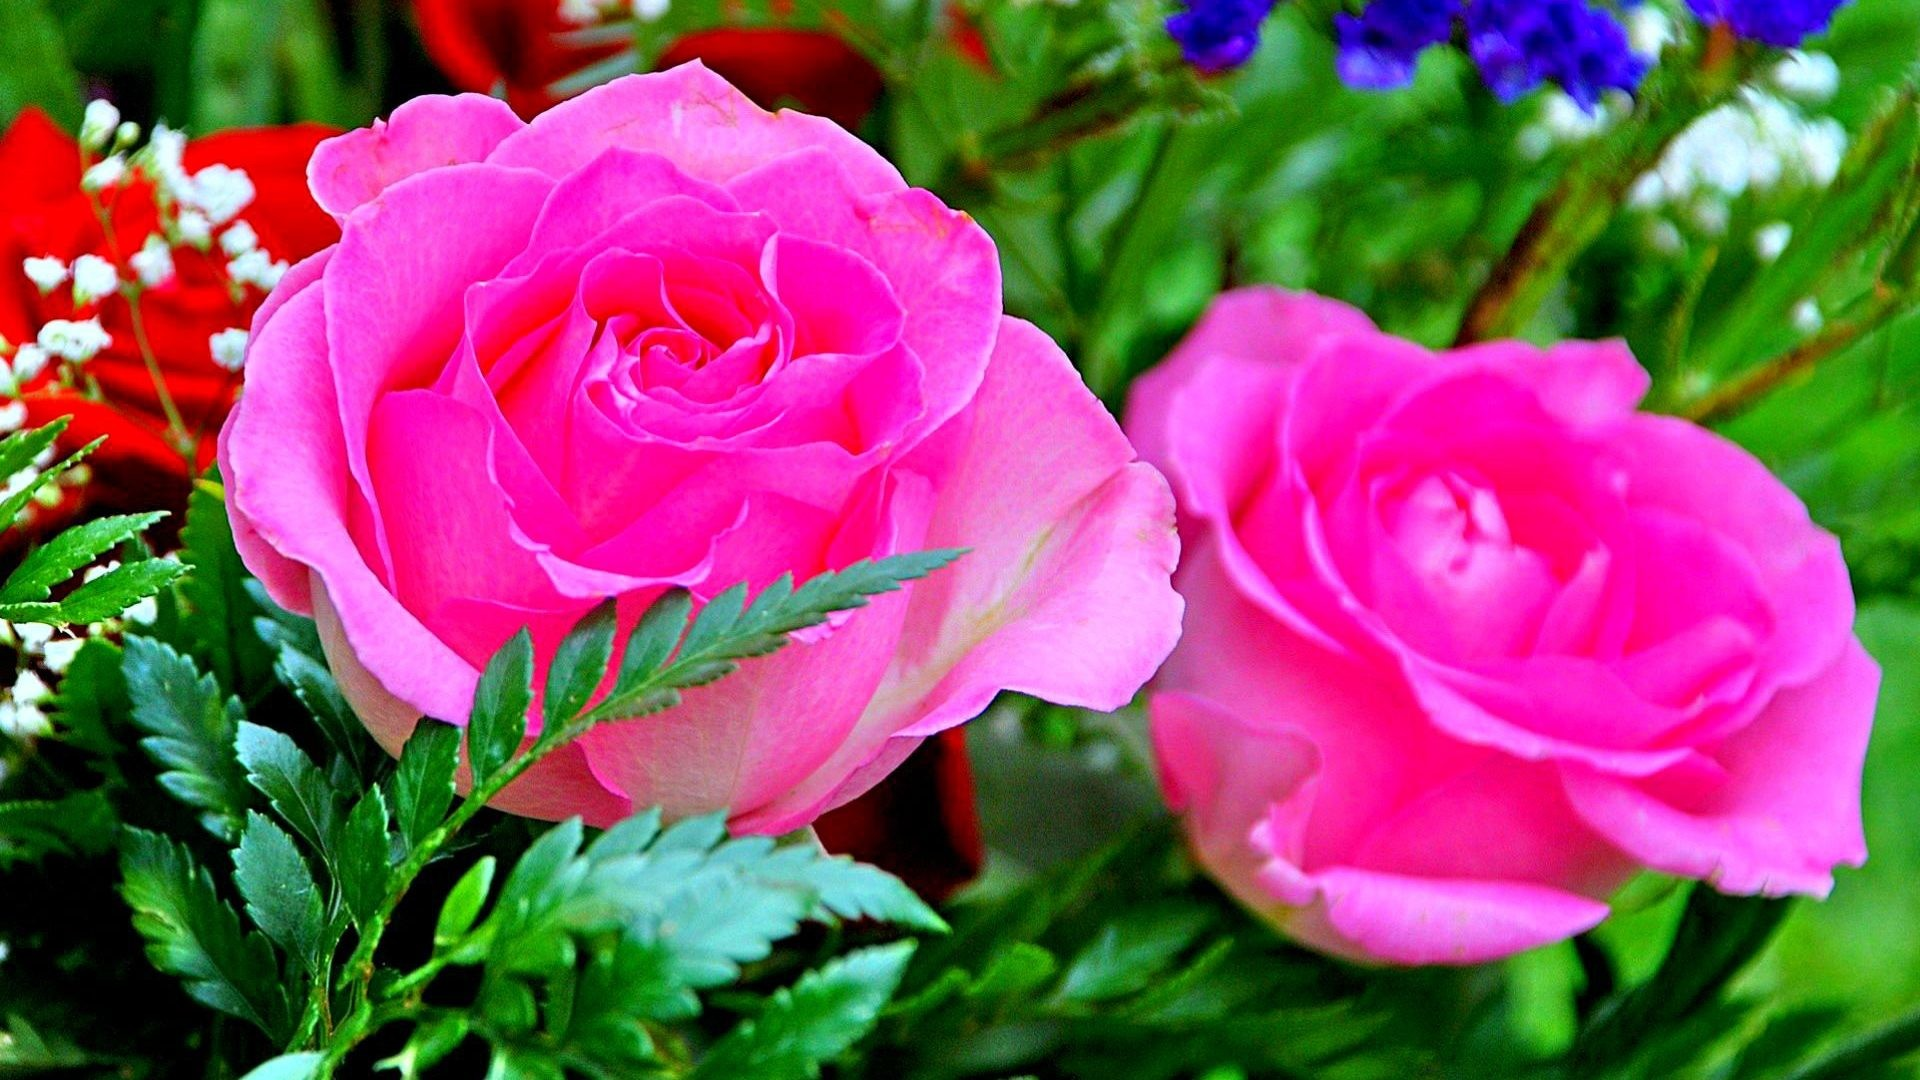 Rose flower images wallpapers 55 images - Pink rose hd wallpaper ...